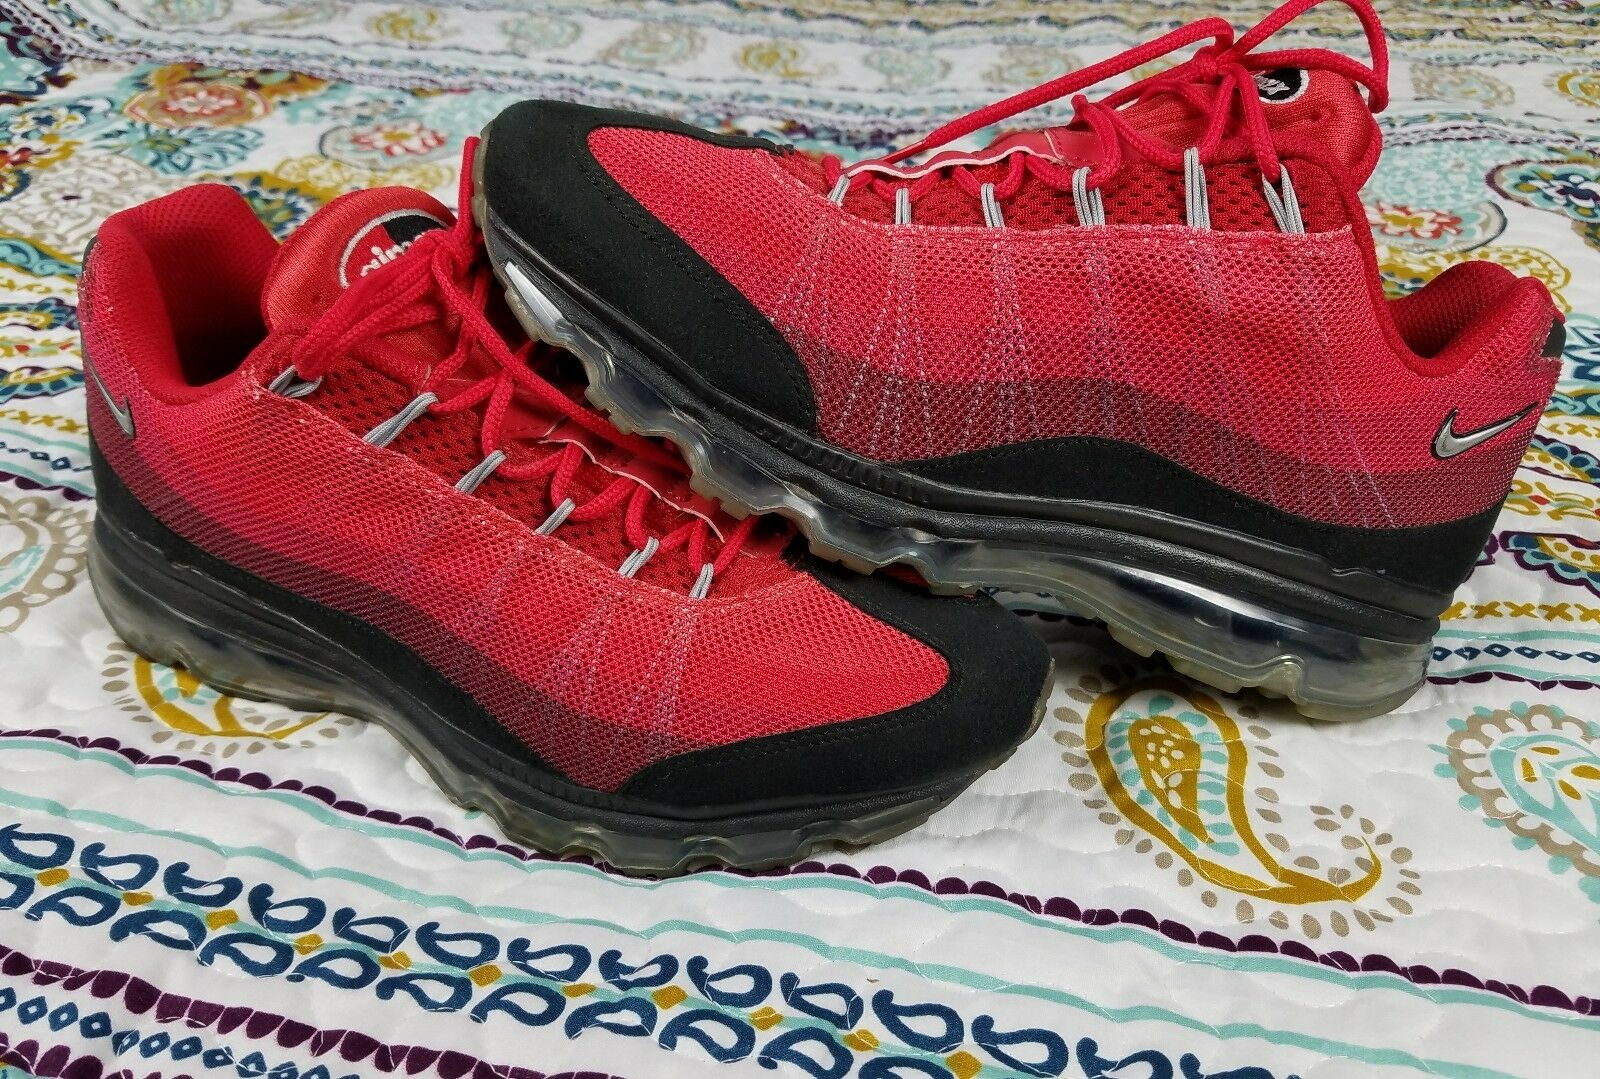 Nike Air Max 95 360 Dynamic Flywire sz 9.5 Running shoes Black & Red